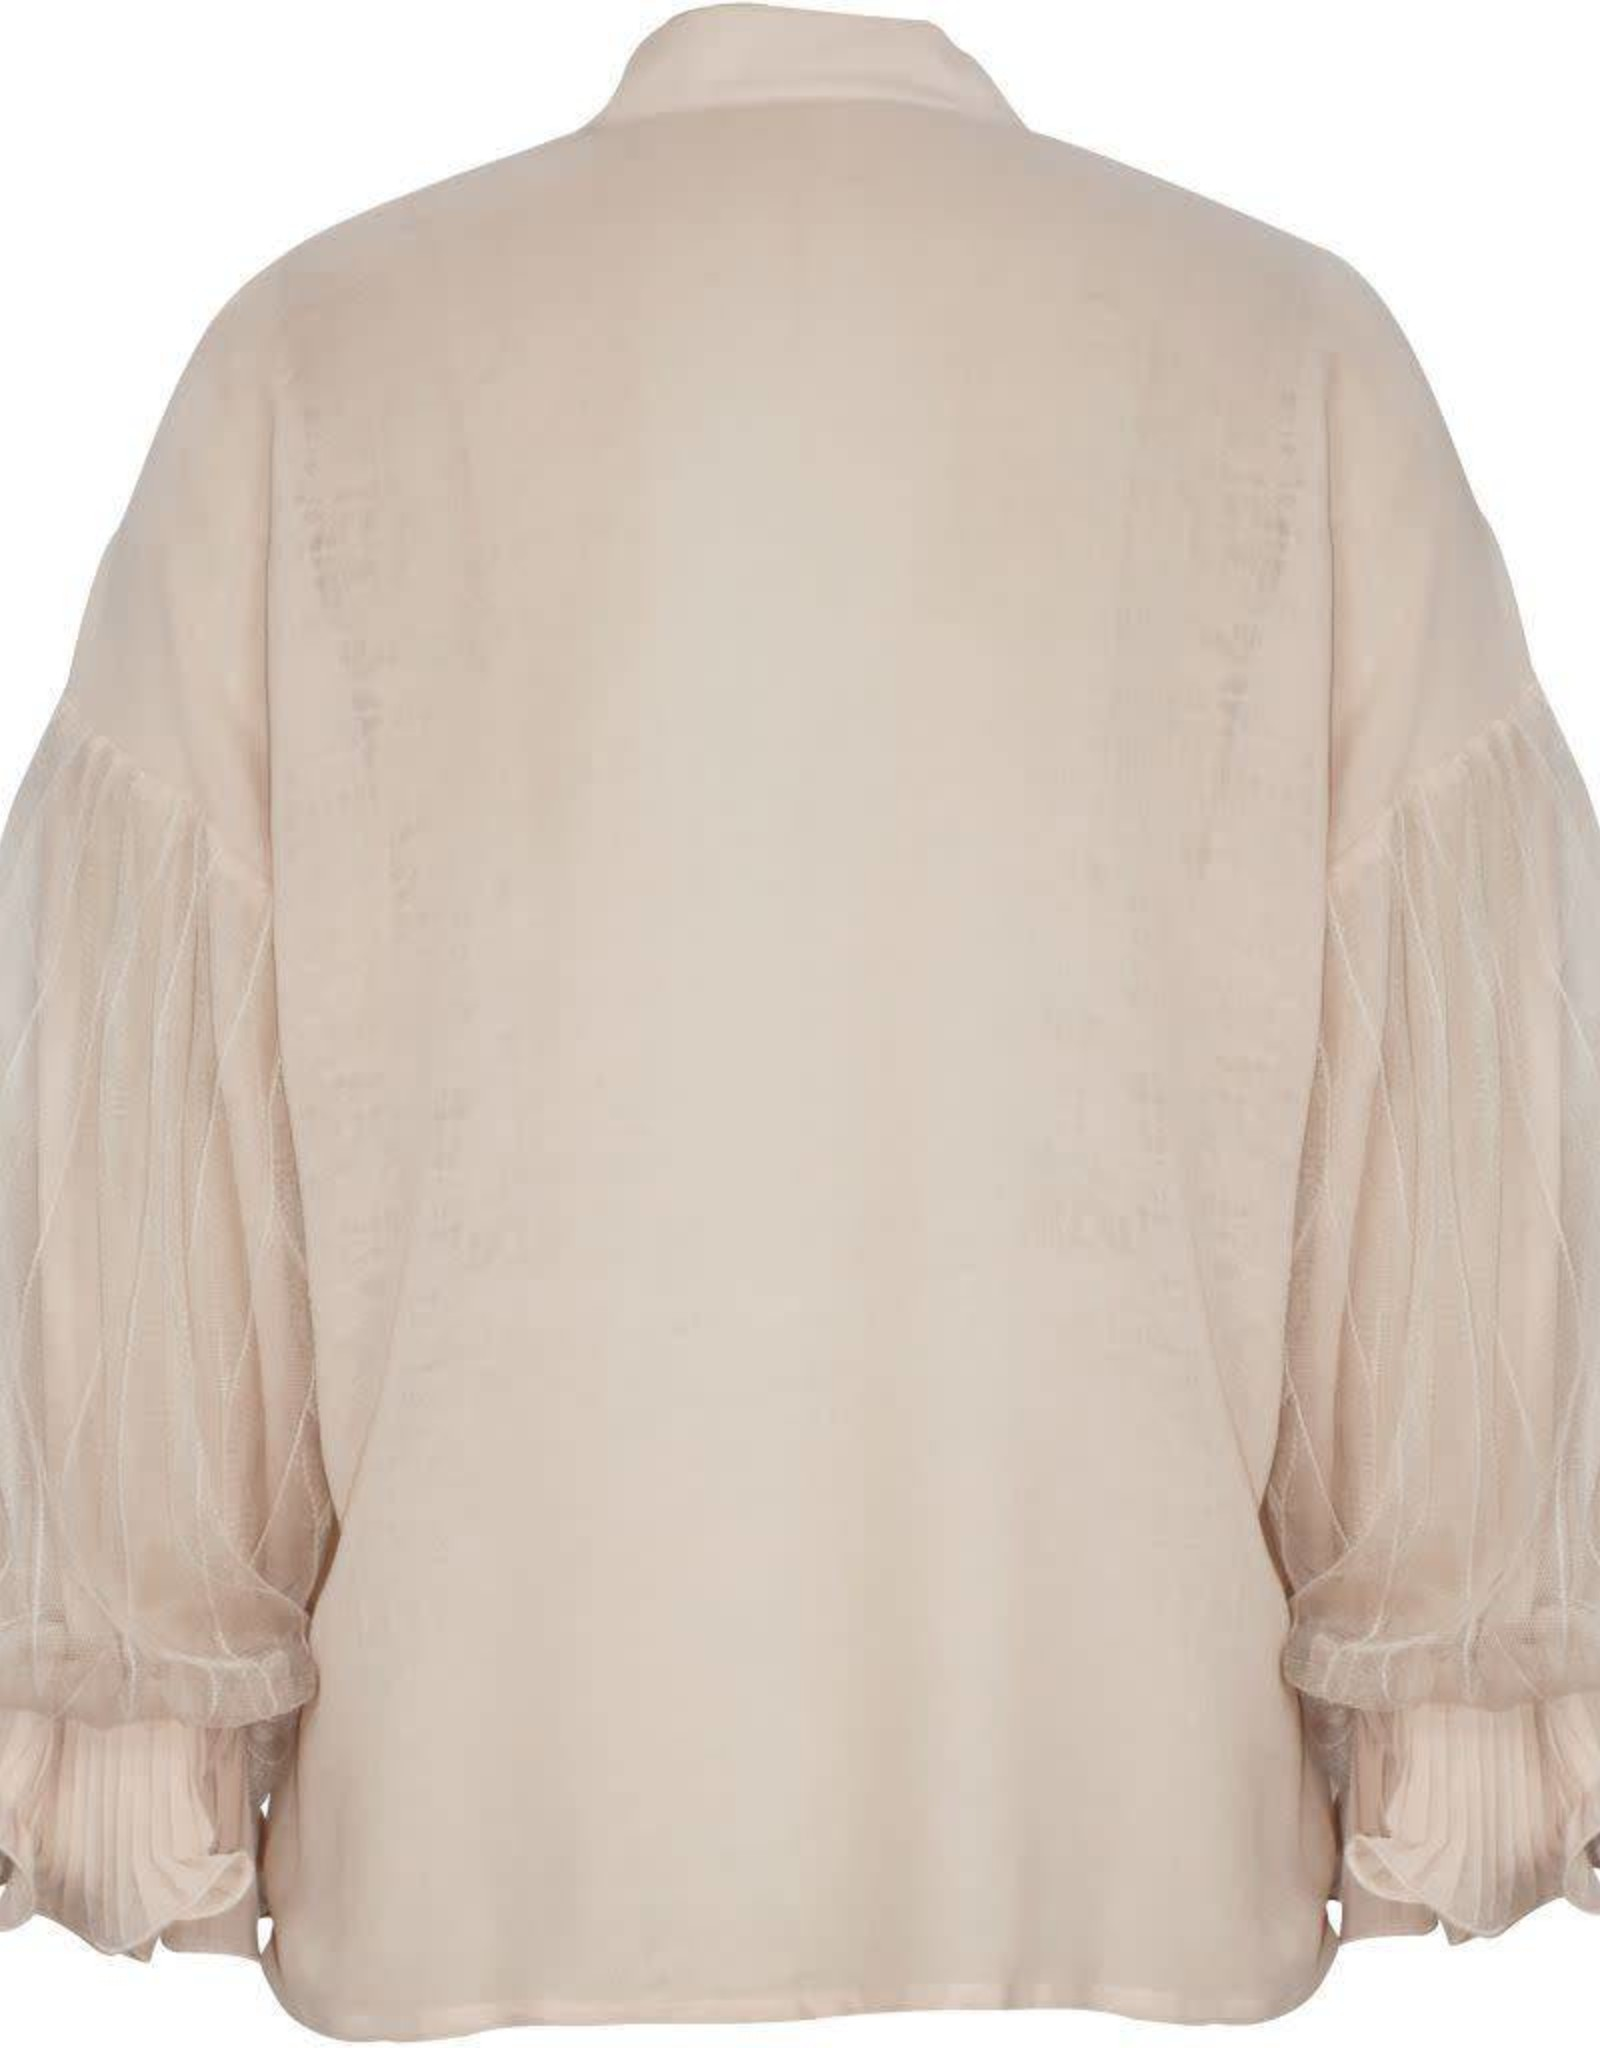 NÜ Denmark Shirt with puff sleeves